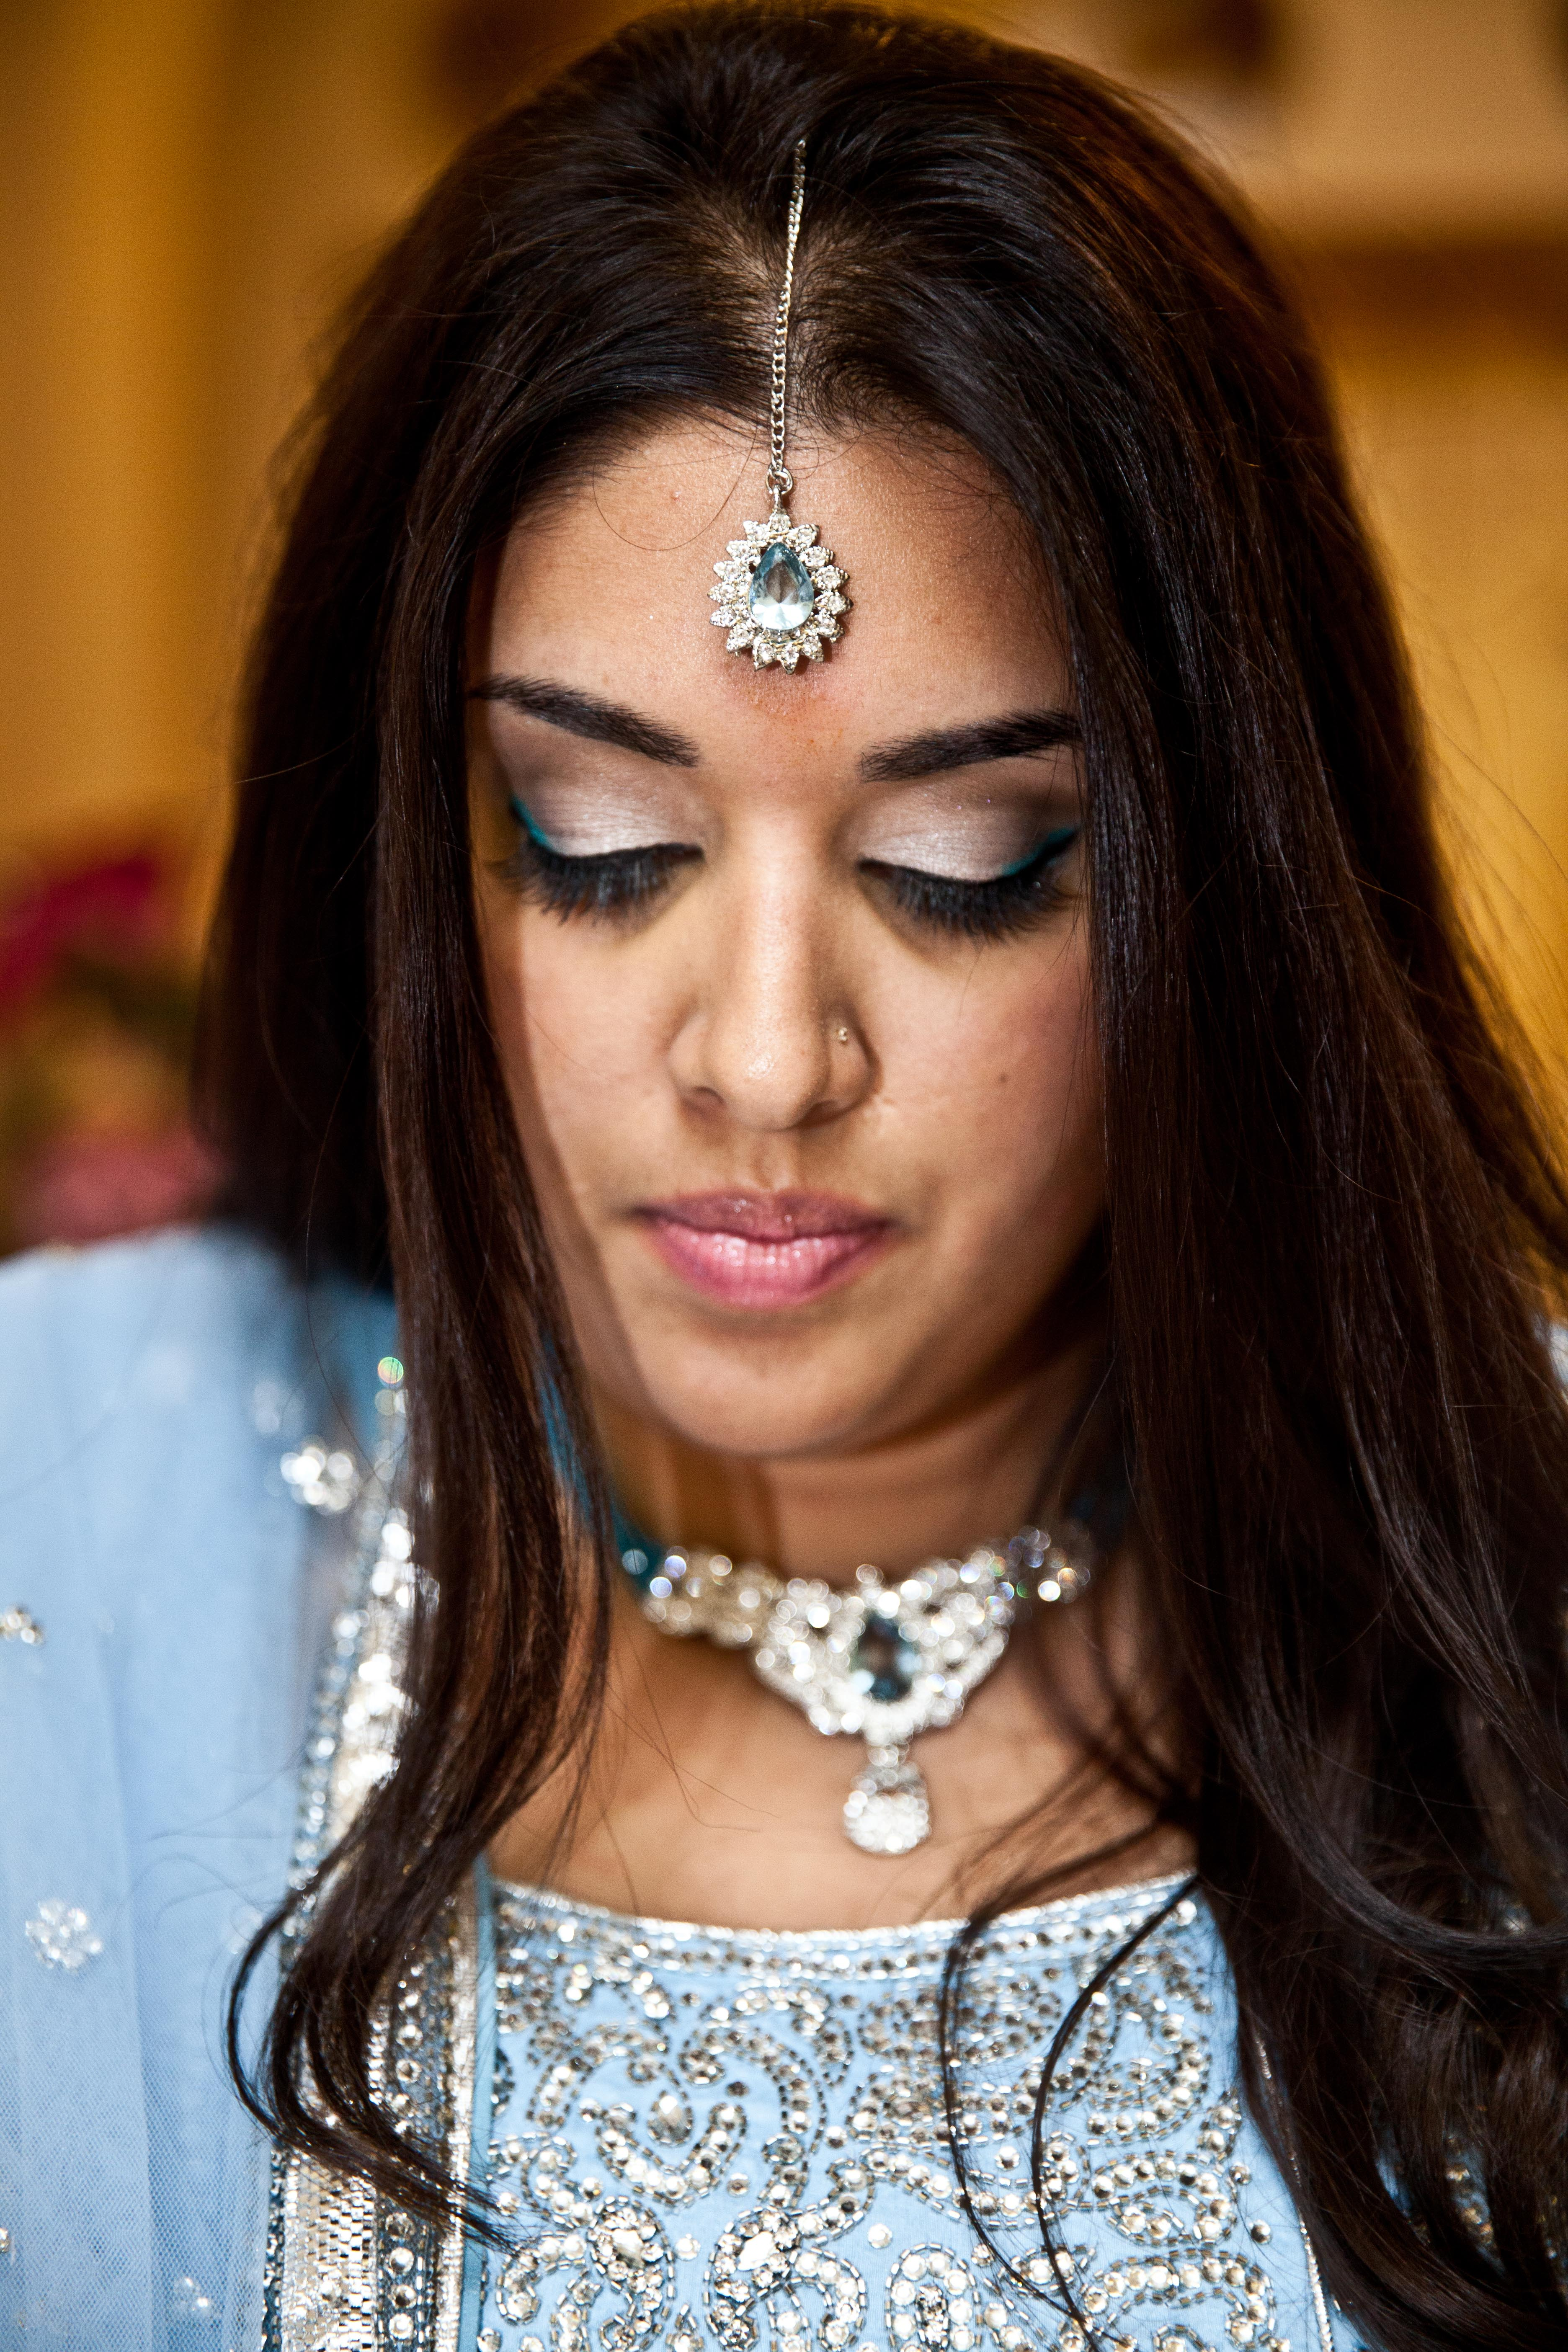 Portrait of the bride in blue sari and jewelry